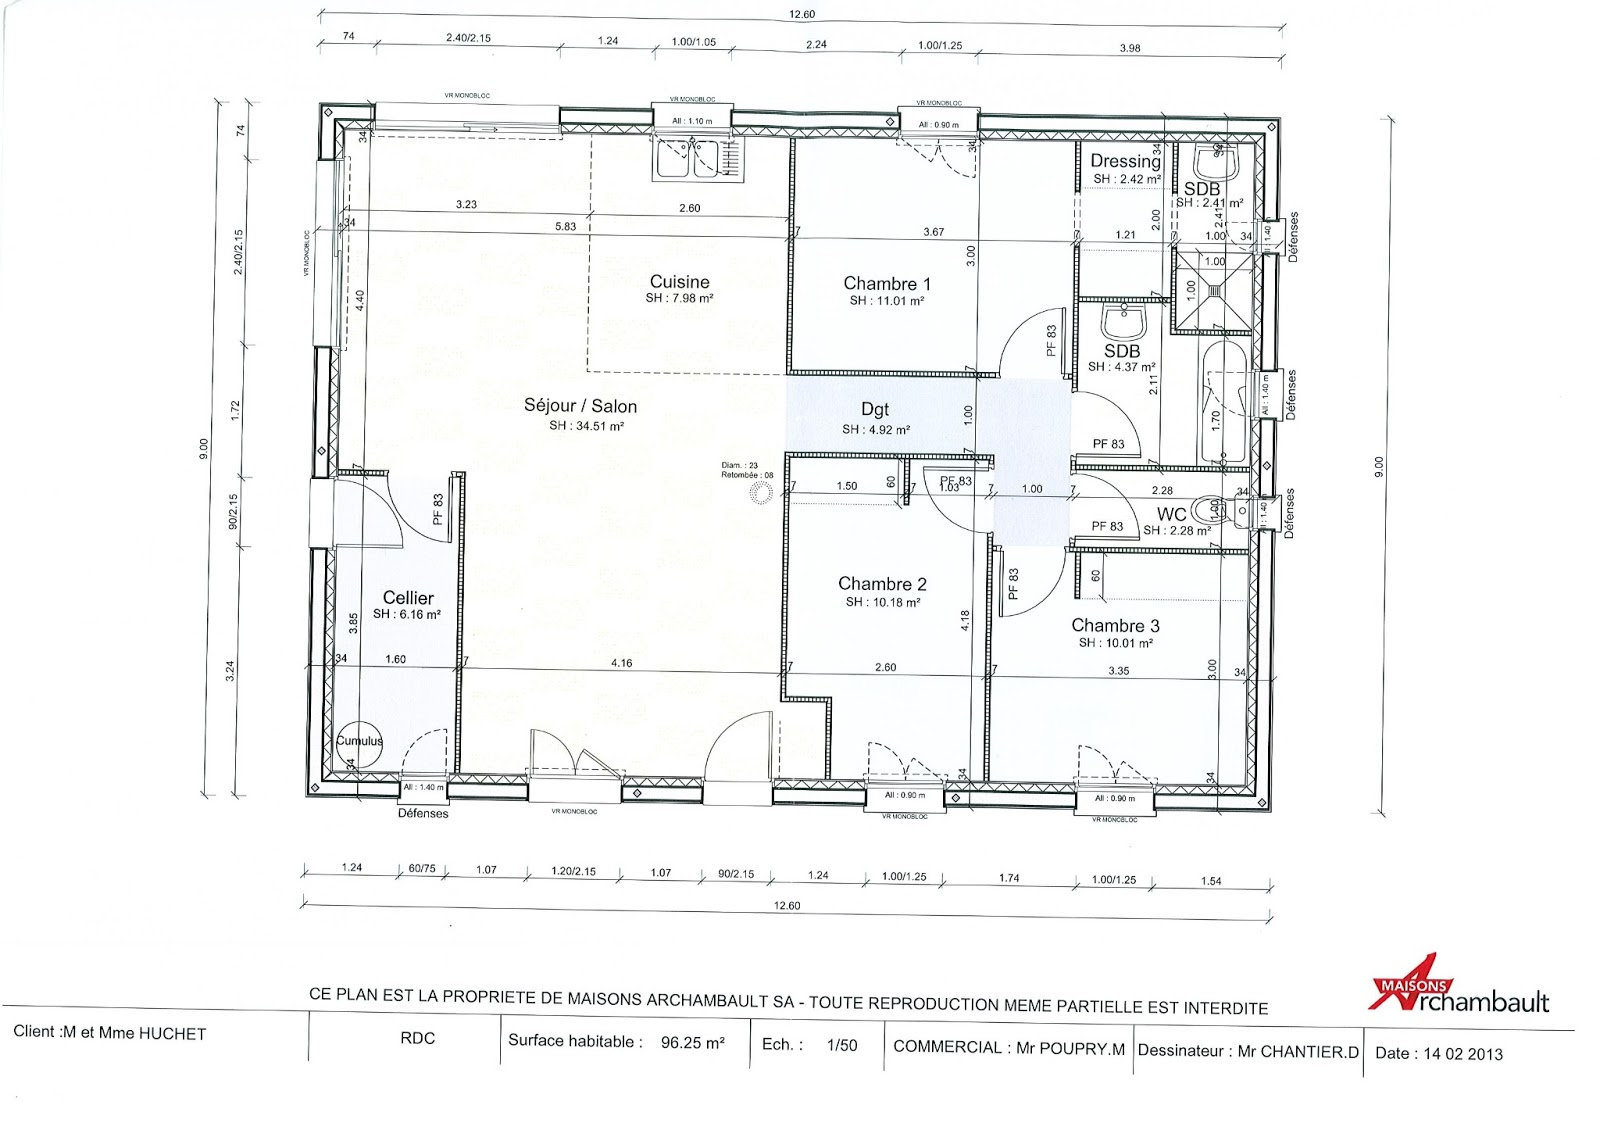 Plan interieur maison en l for Plan interieur maison en d